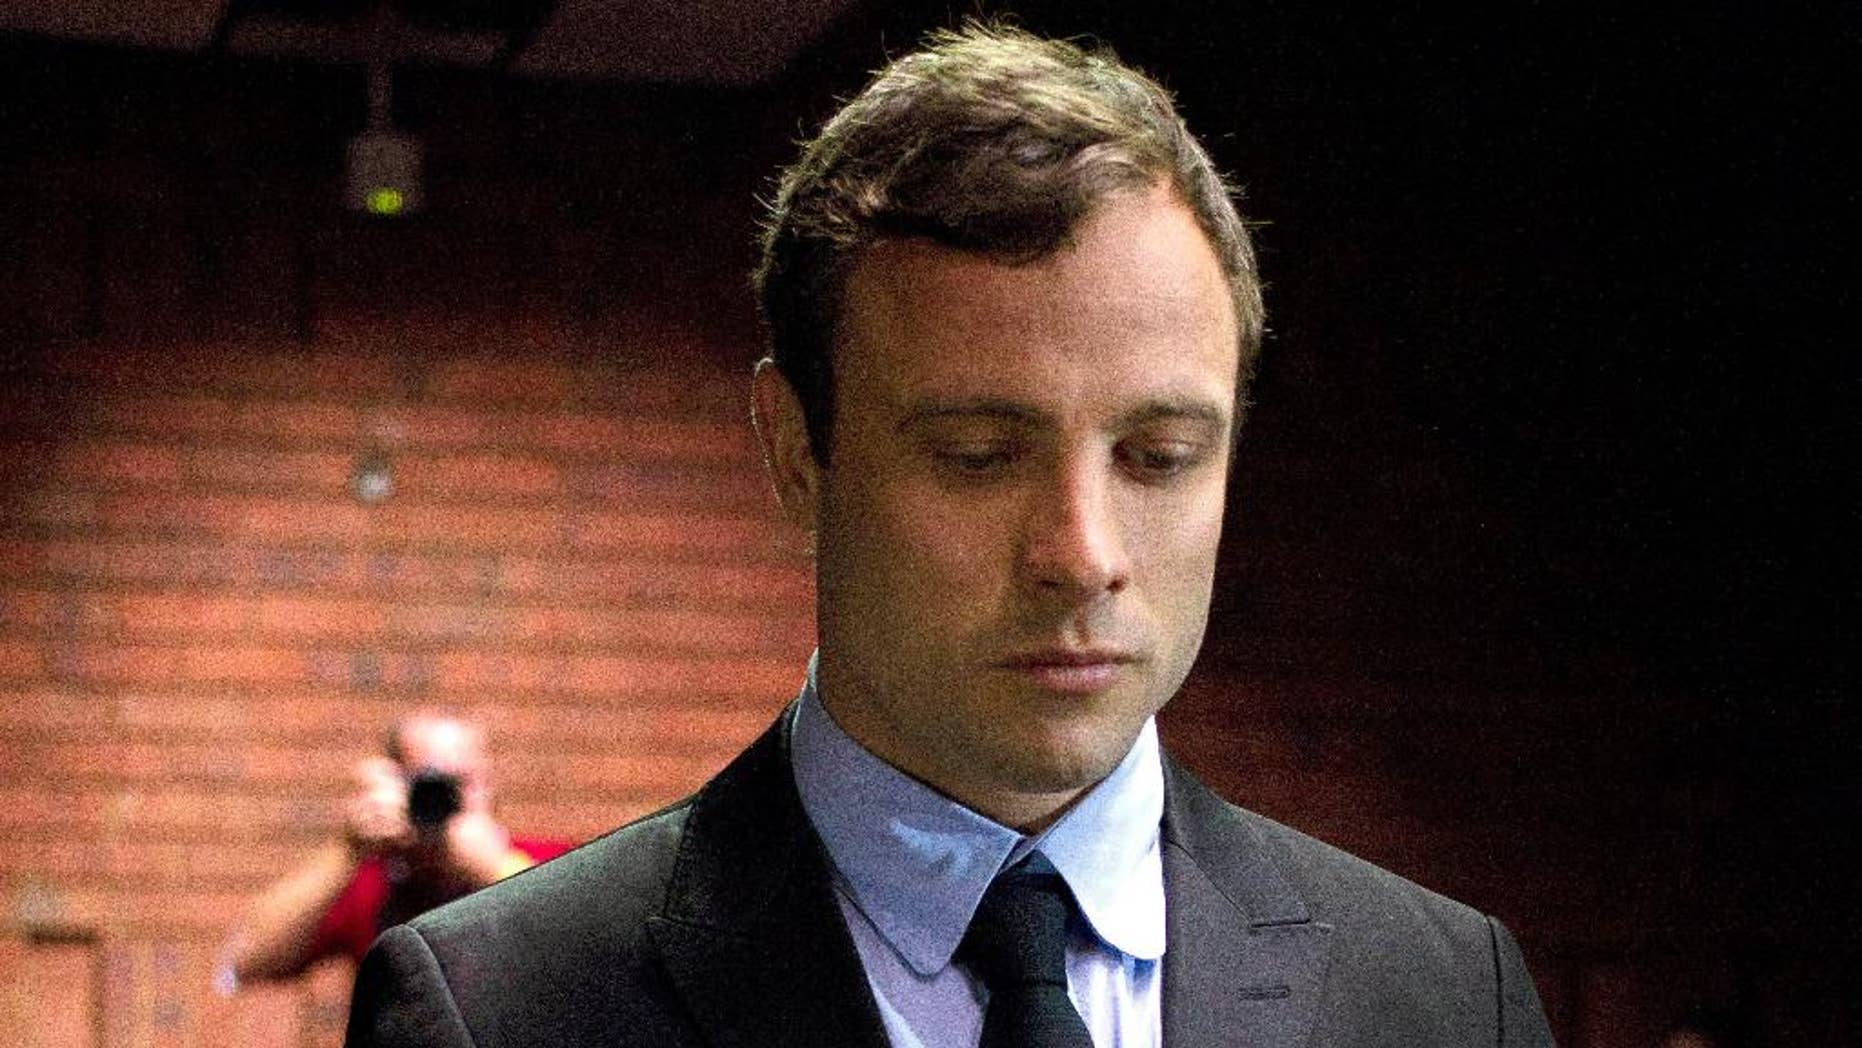 Aug. 19, 2013 - FILE photo of double-amputee Olympian Oscar Pistorius at the magistrates court to be indicted on charges of murder and illegal possession of ammunition for the shooting death of his girlfriend on Valentine's Day in Pretoria, South Africa.